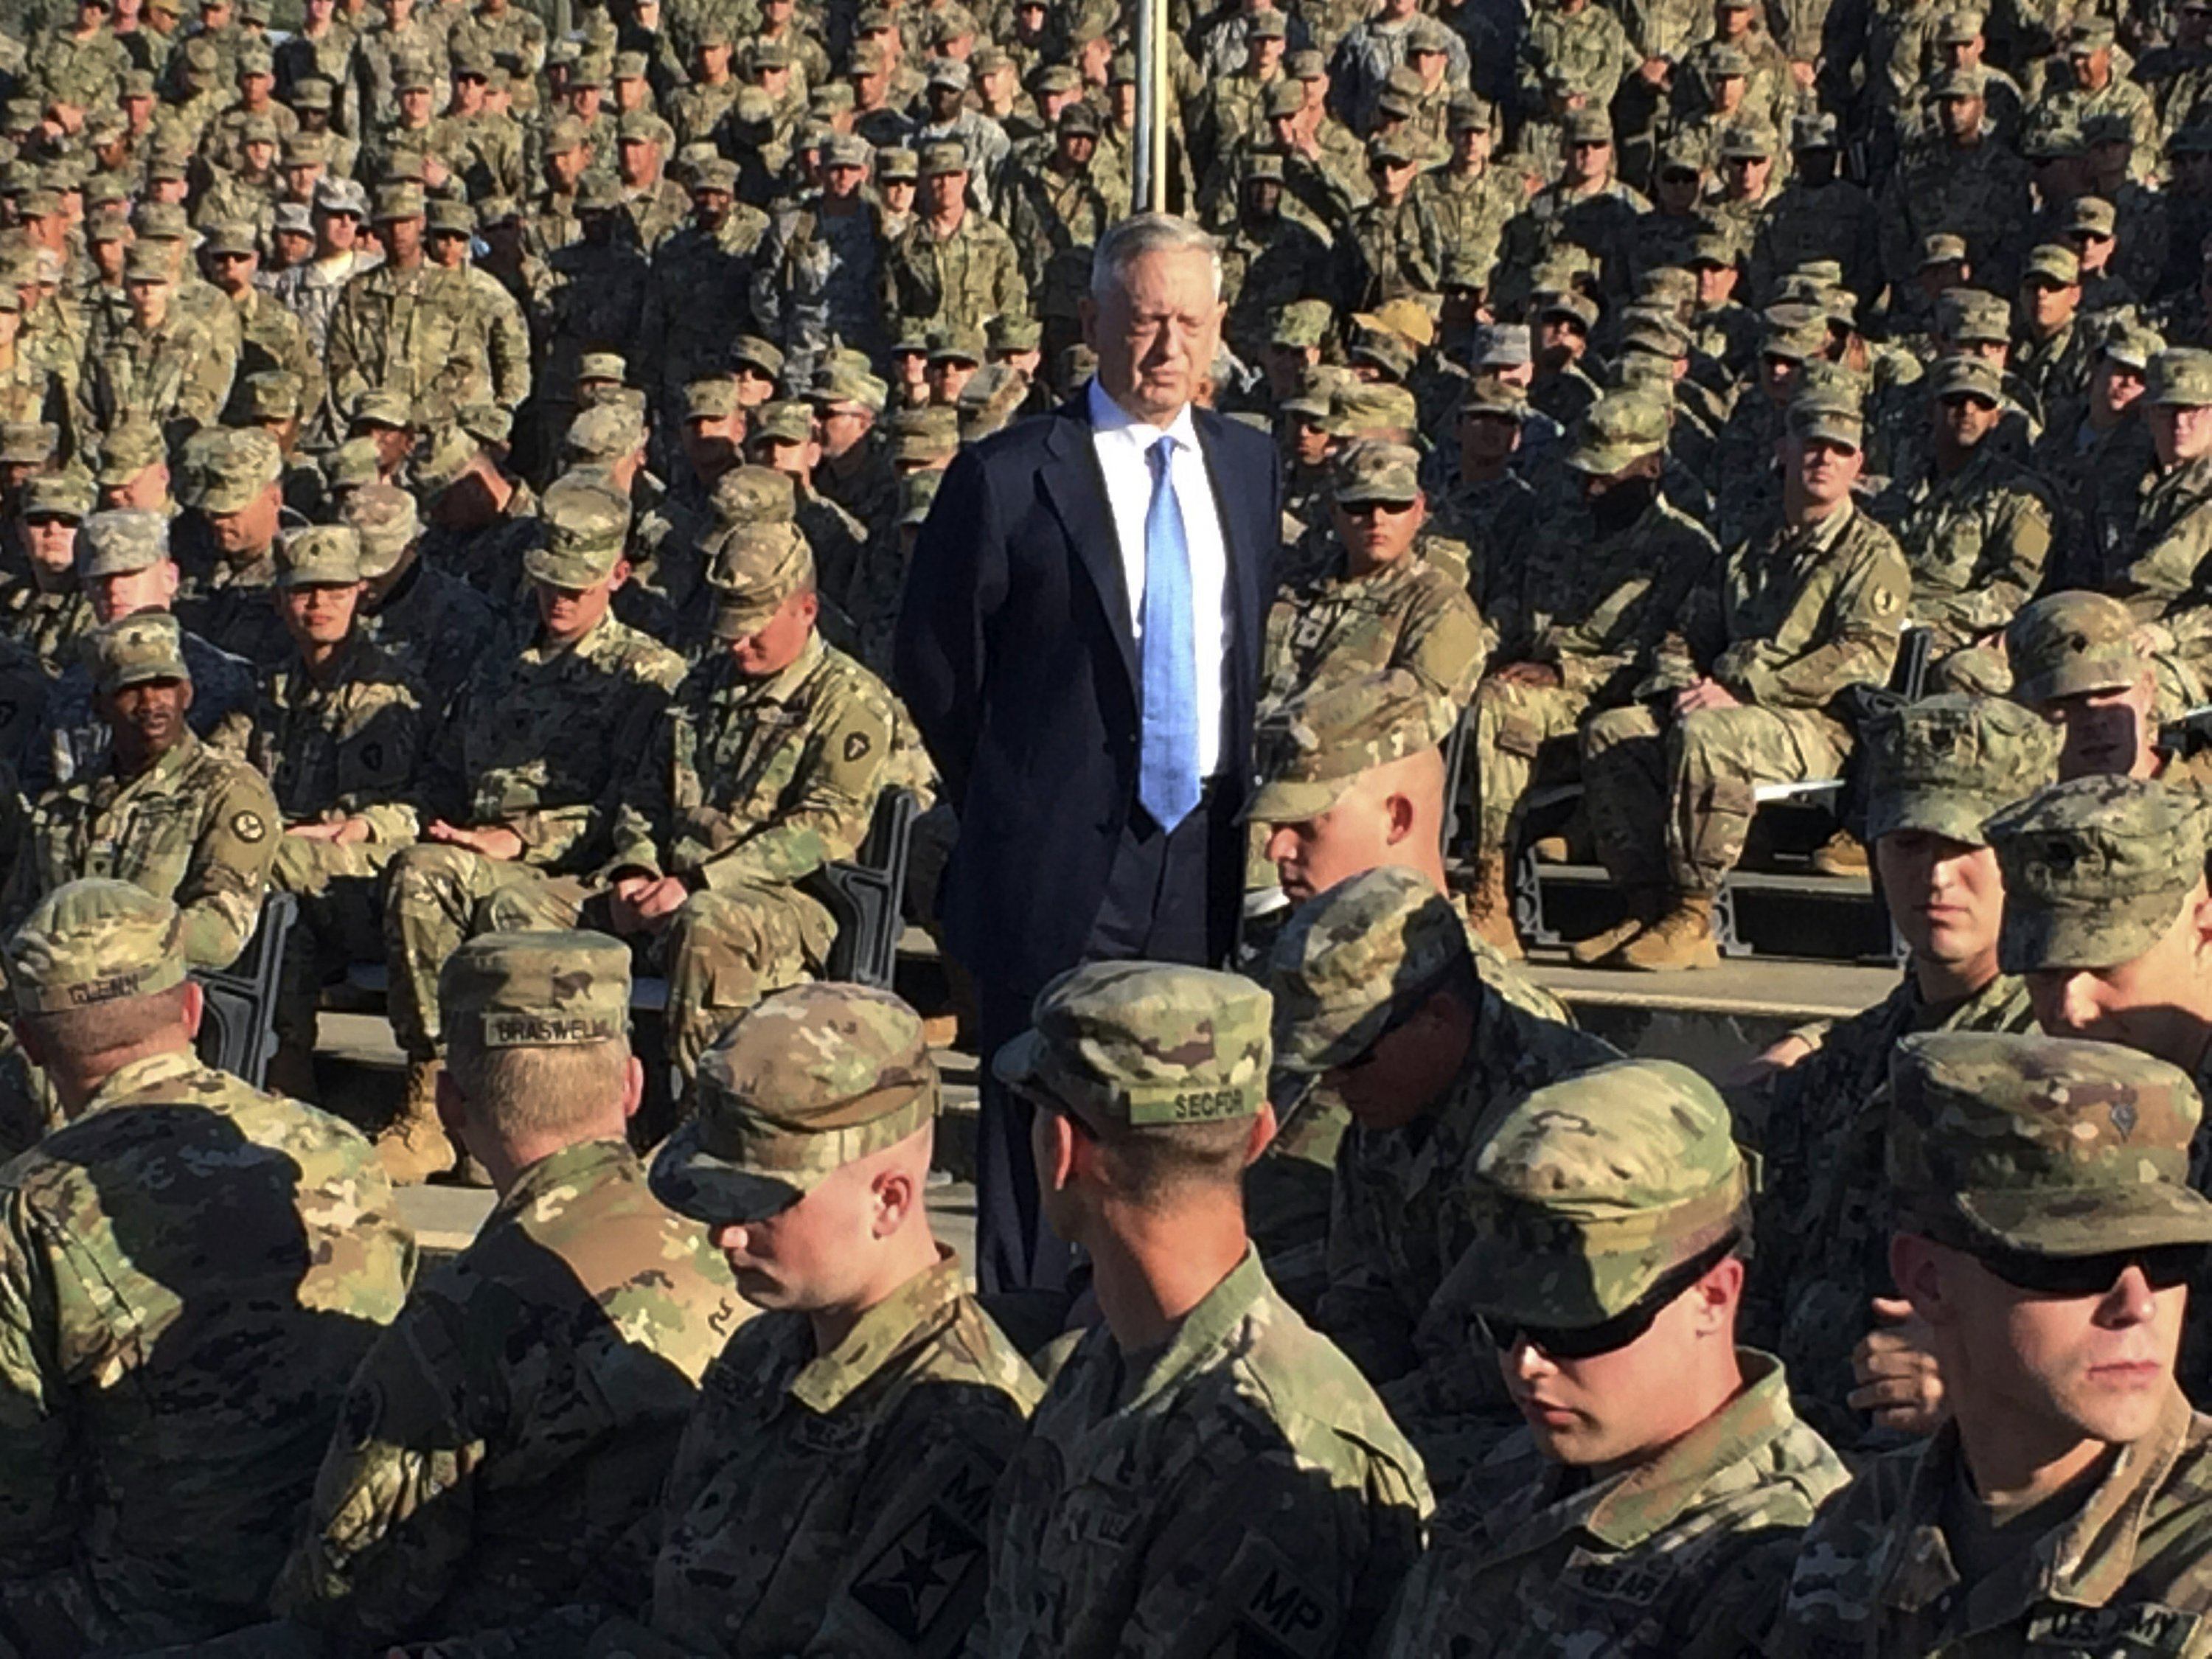 Mattis reveals himself in storytelling moments with troops